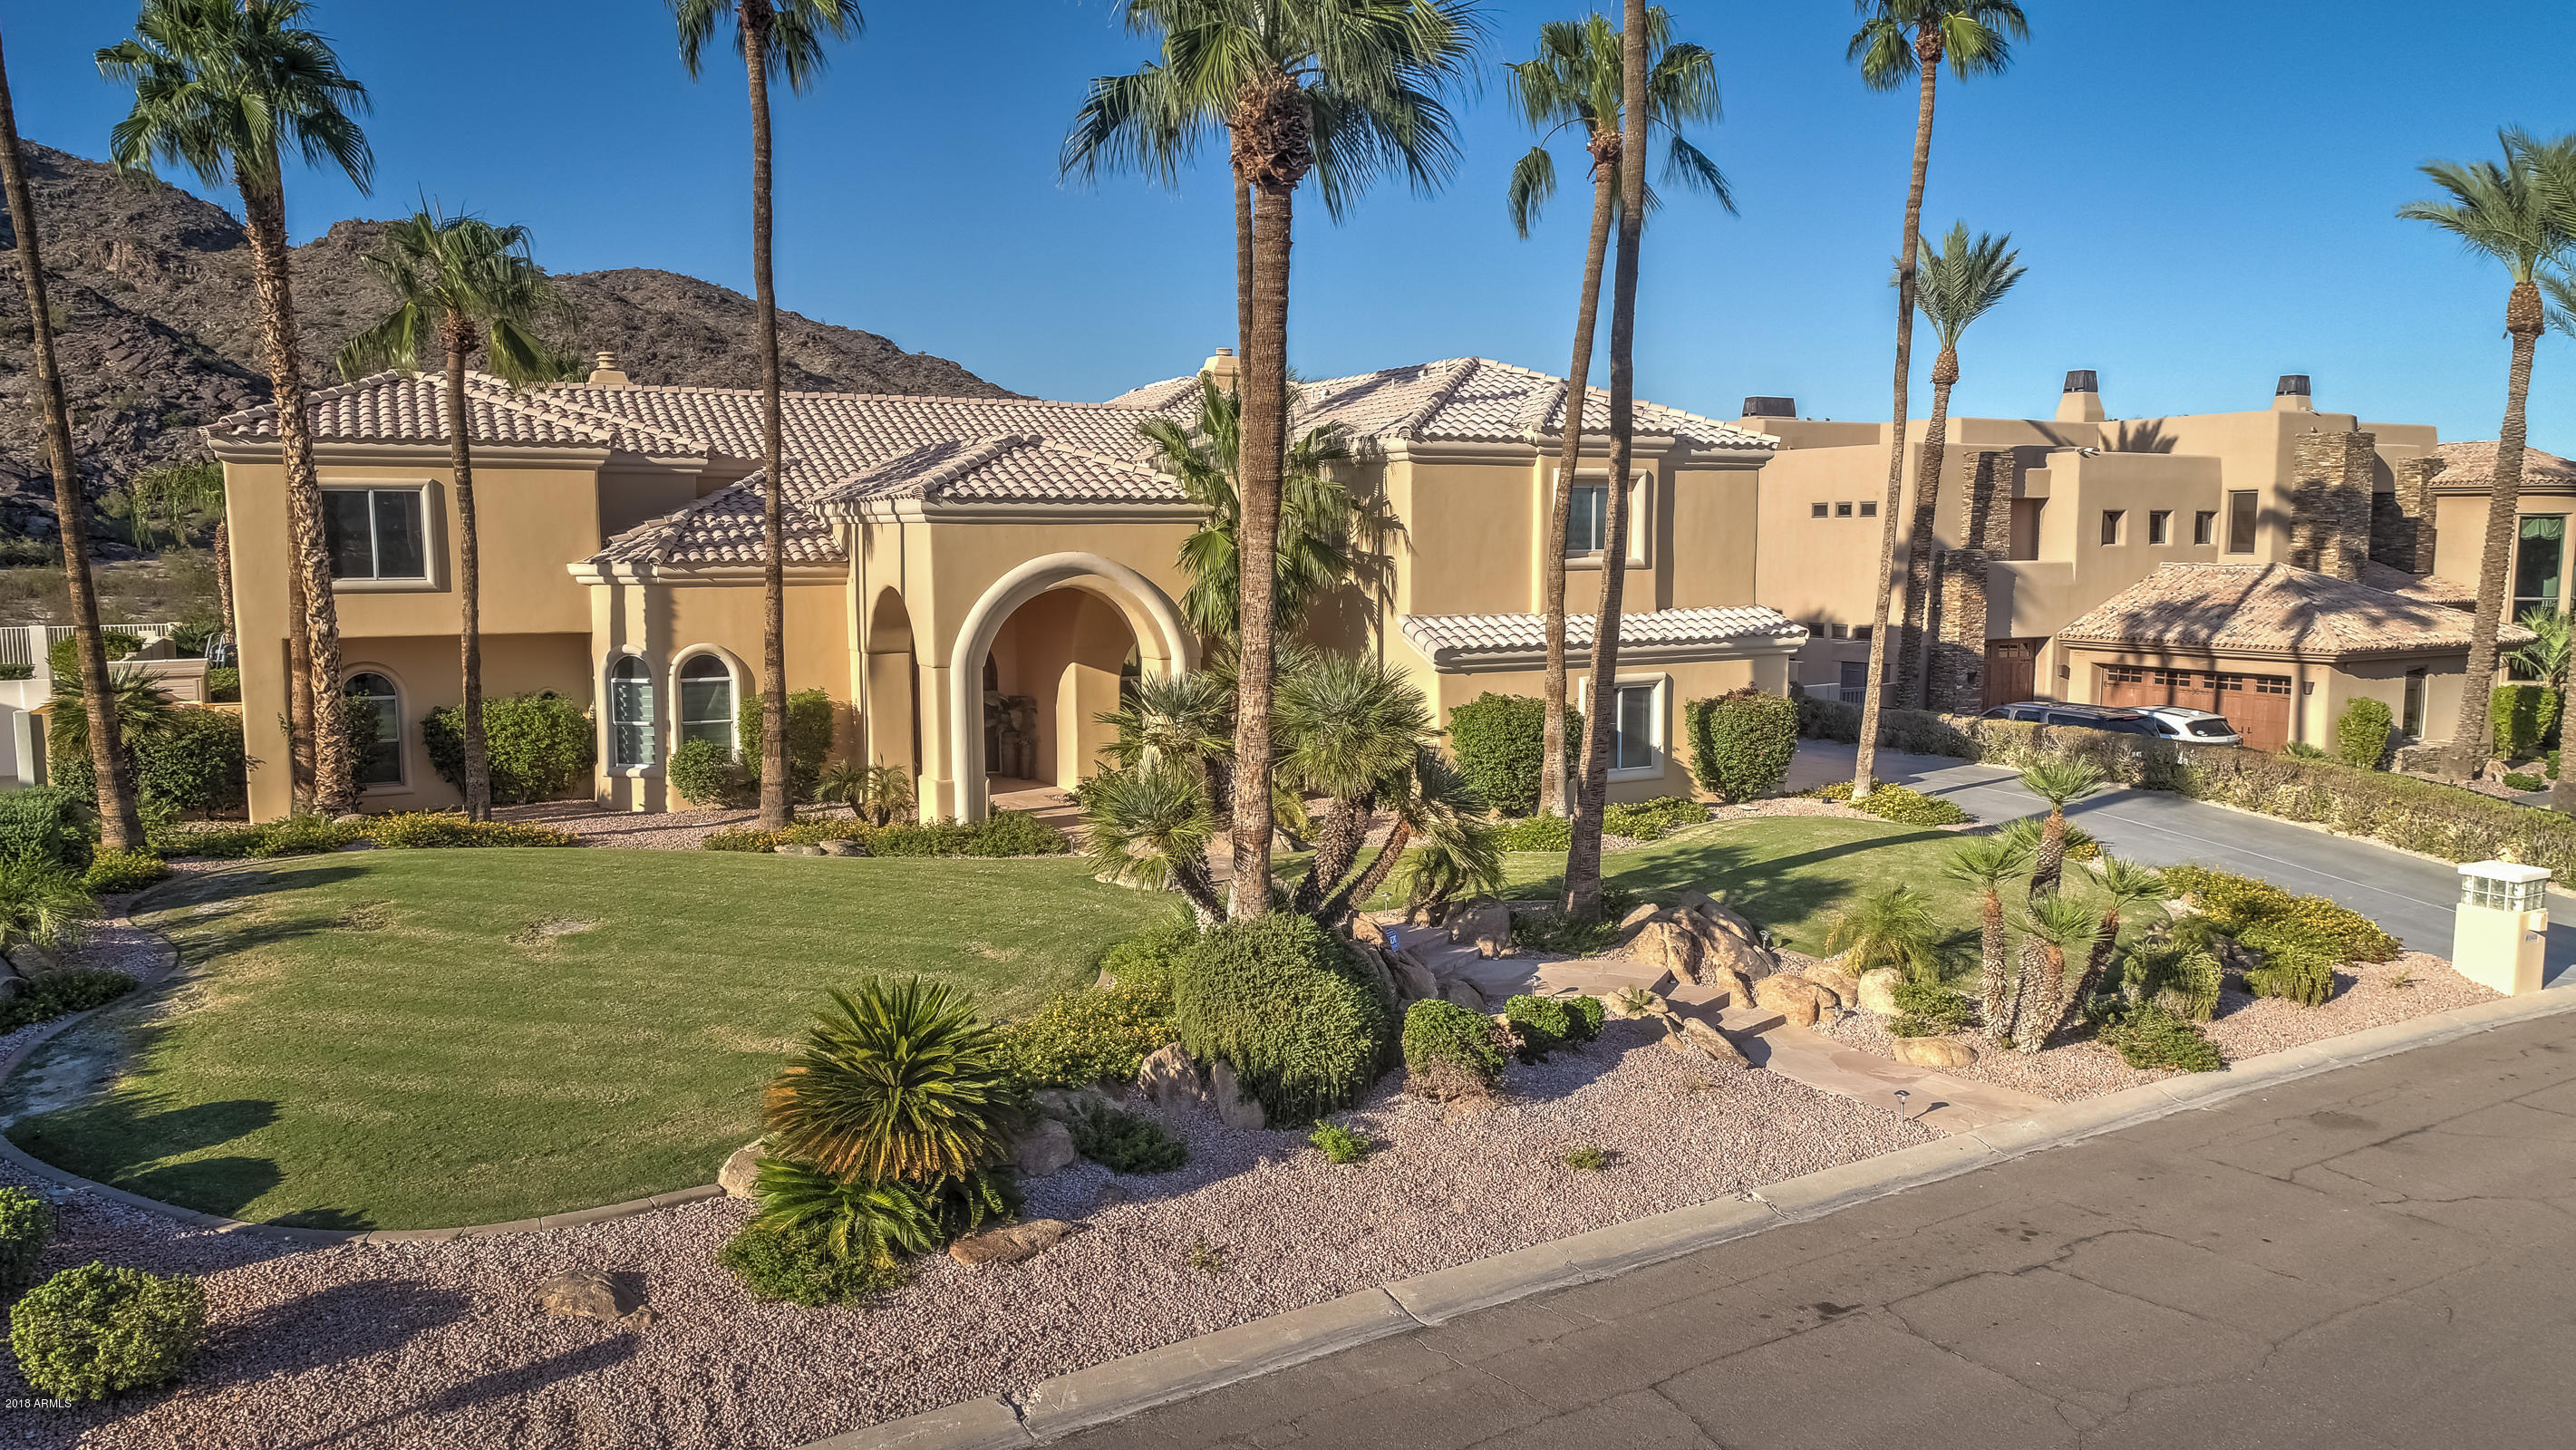 MLS 5826973 3430 E KACHINA Drive, Phoenix, AZ 85044 Ahwatukee Community AZ Luxury